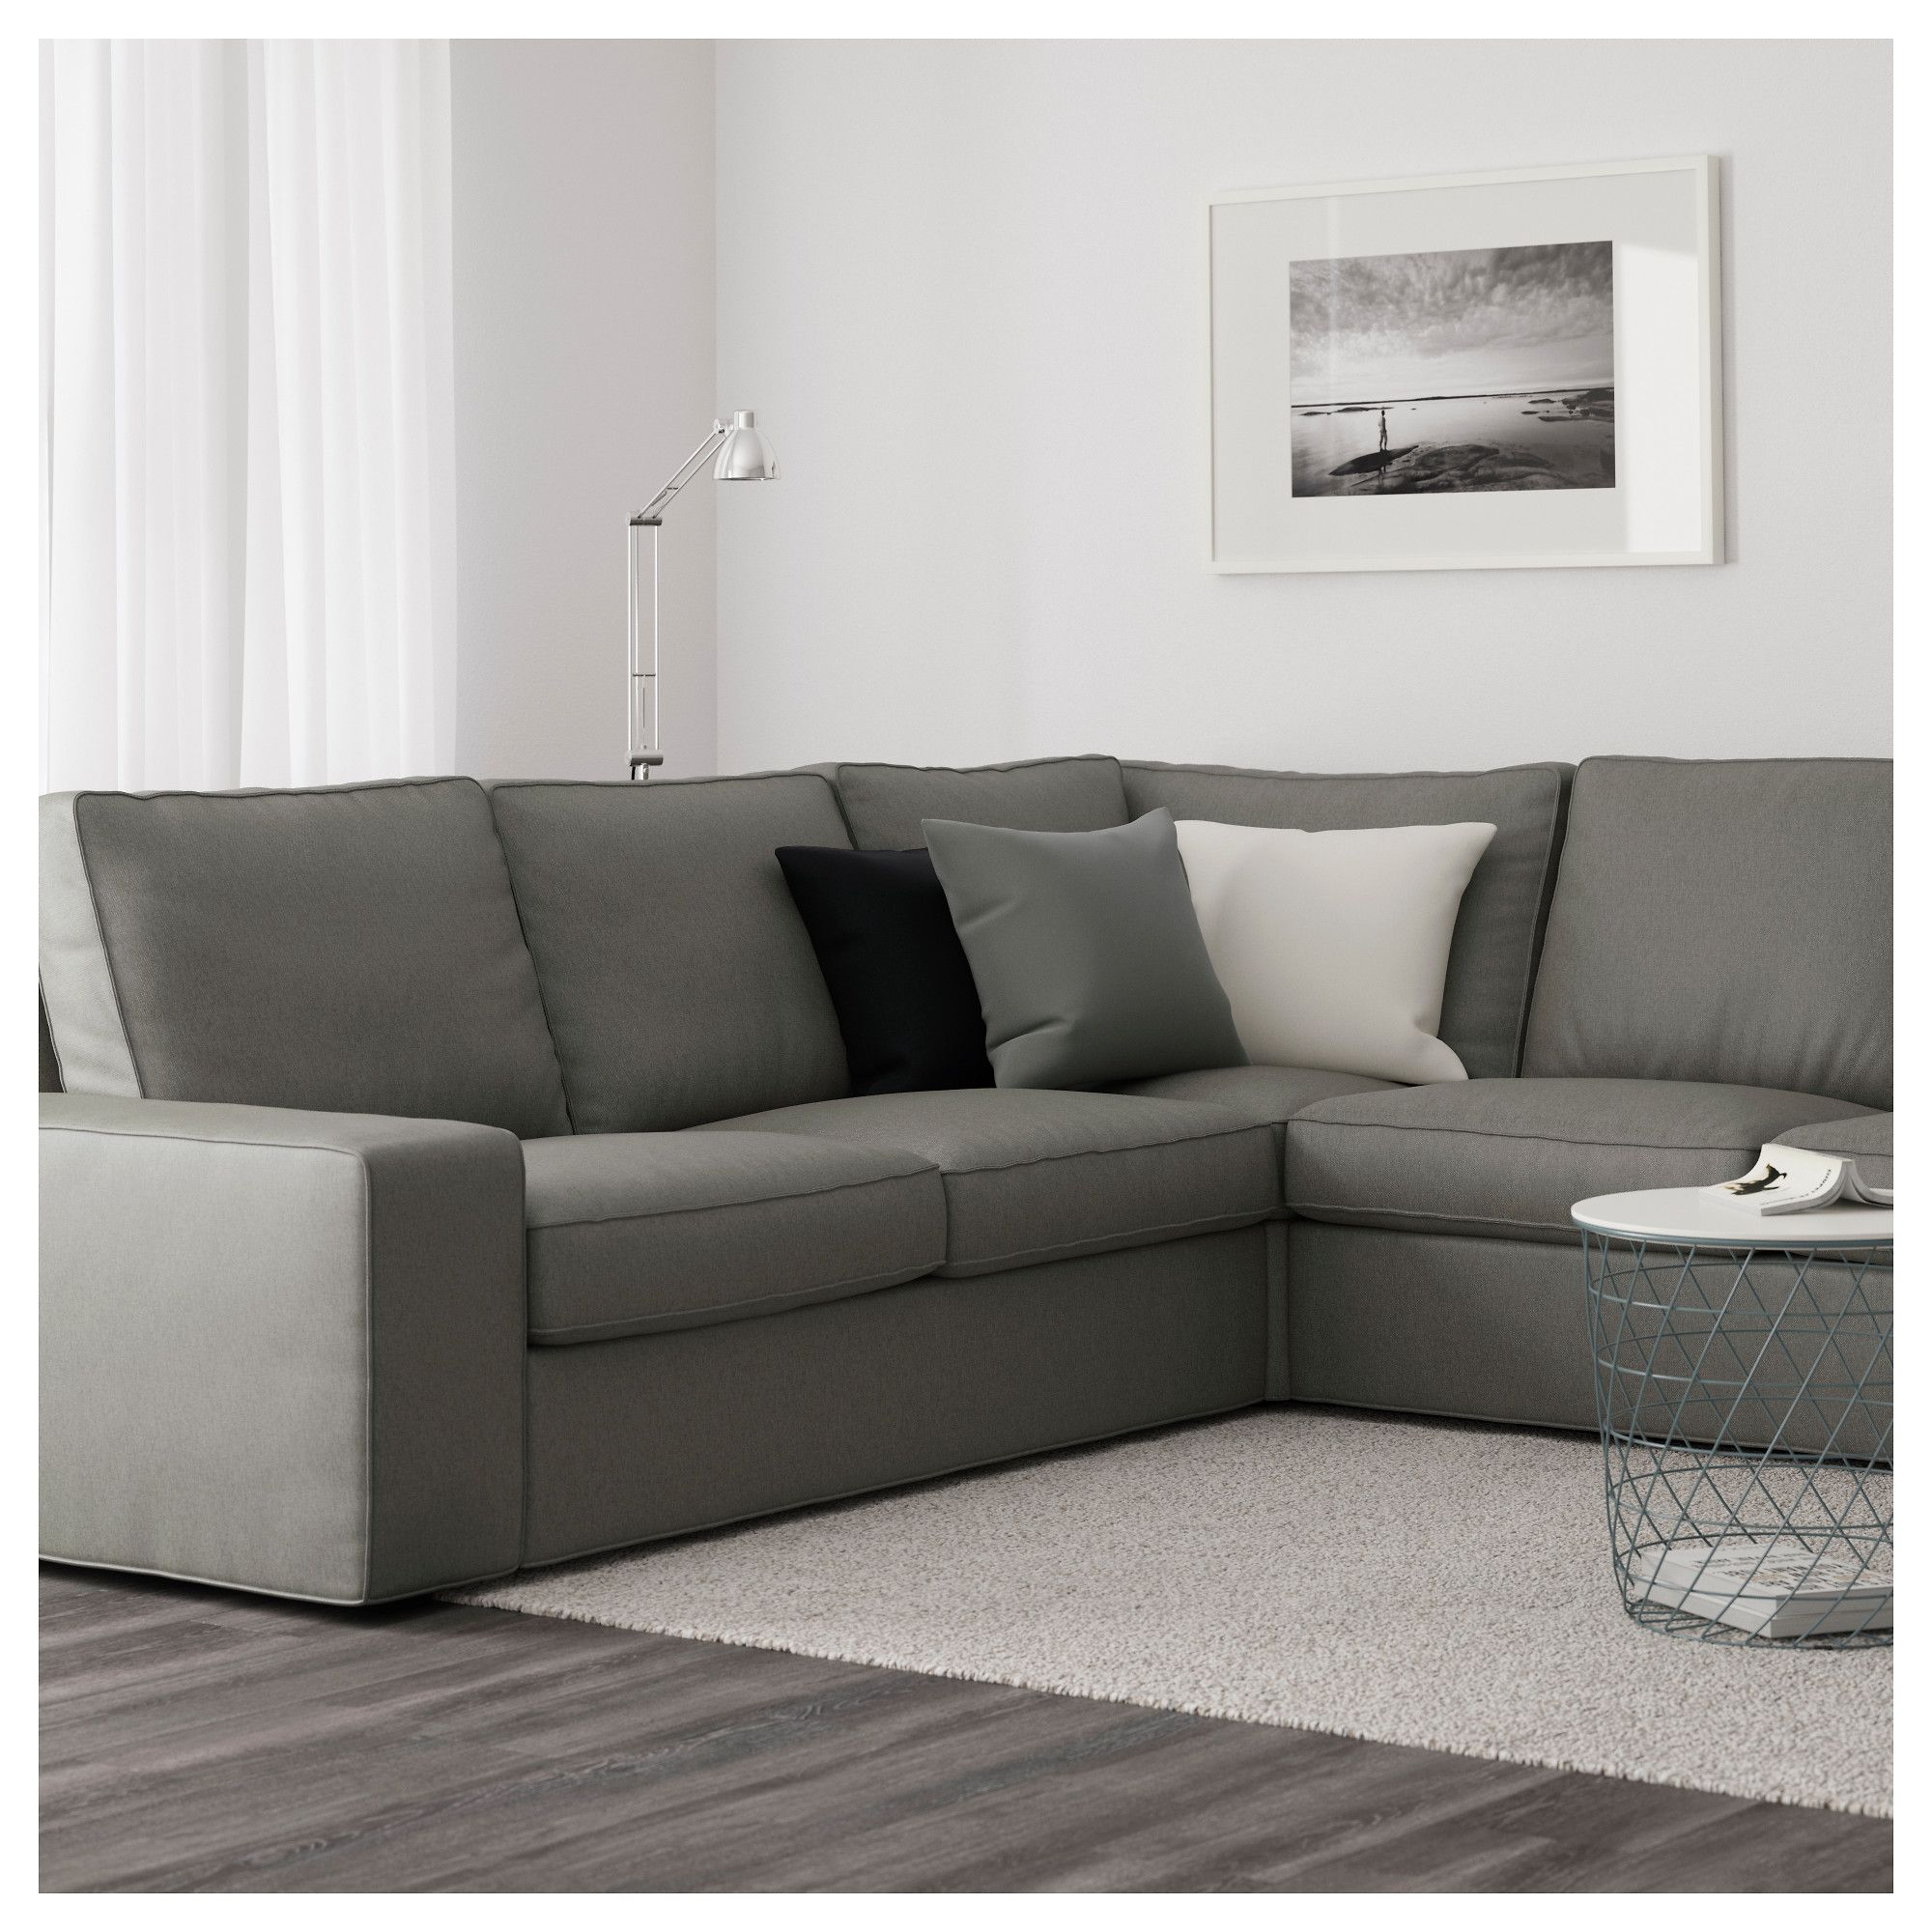 Furniture And Home Furnishings Ecksofa Modulares Ecksofa Einrichtungsideen